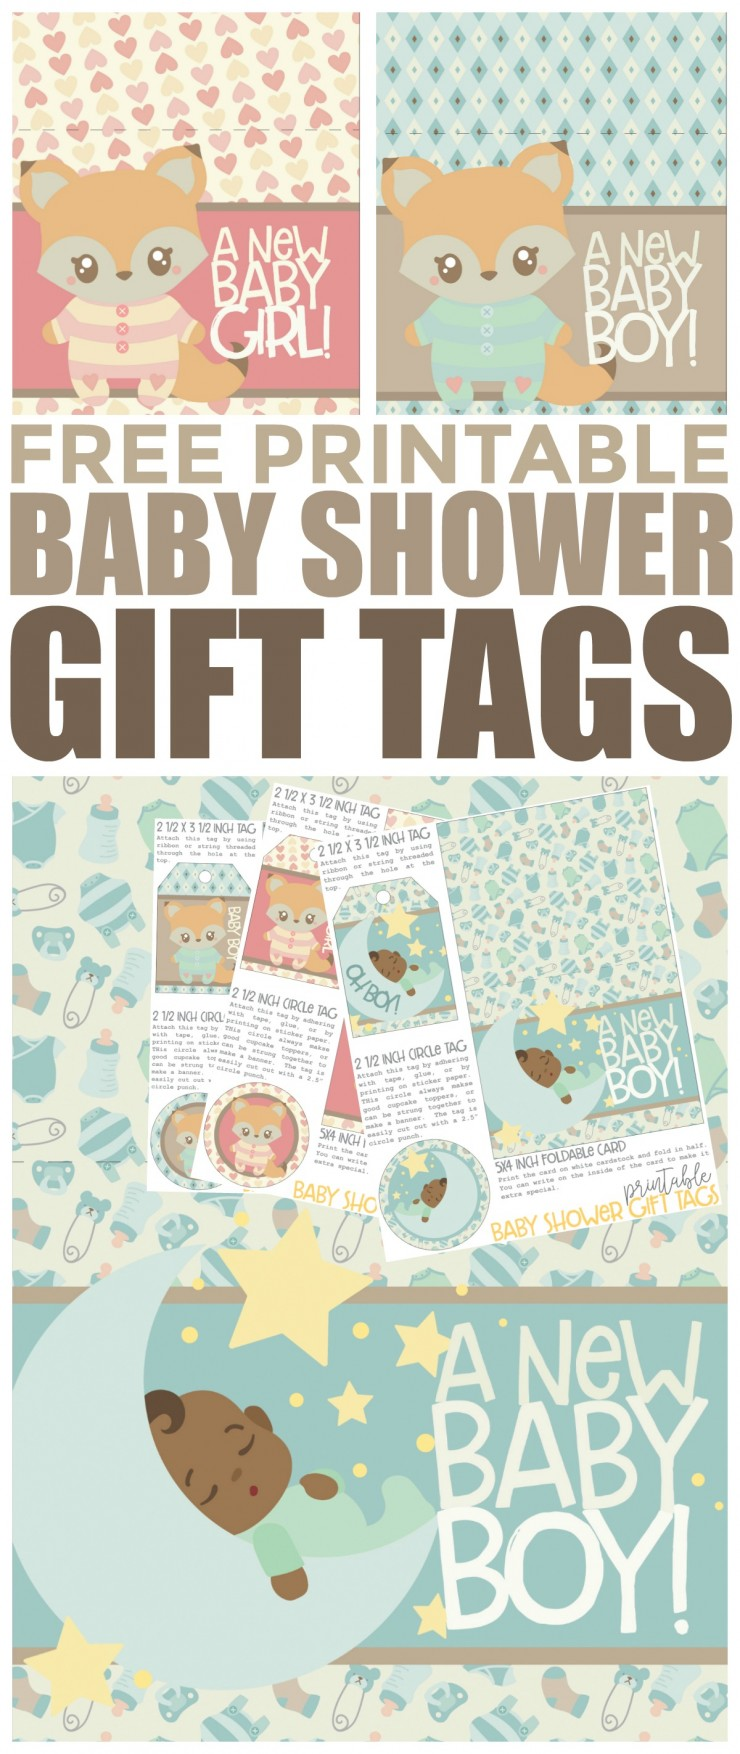 photo regarding Printable Baby Shower known as Cost-free Printable Child Shower Present Tags - Frugal Mother Eh!